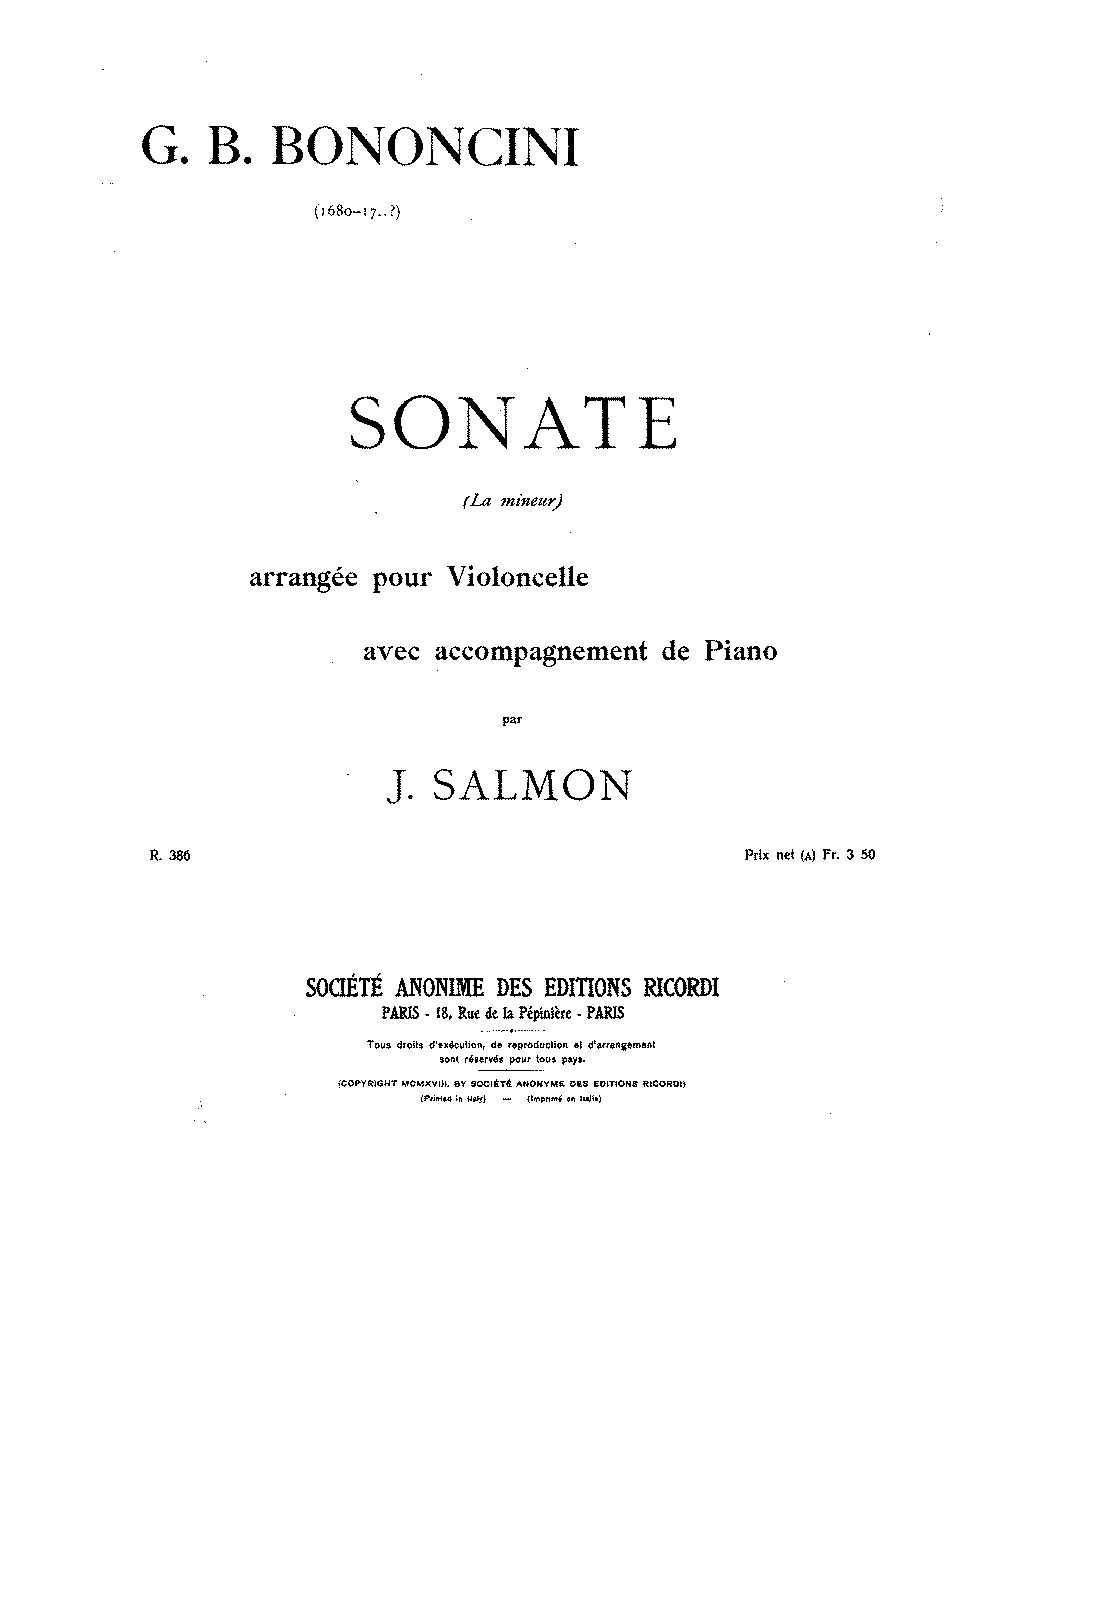 PMLP51644-Bononcini - Sonate in A minor for Cello and Piano (Salmon) piano.pdf